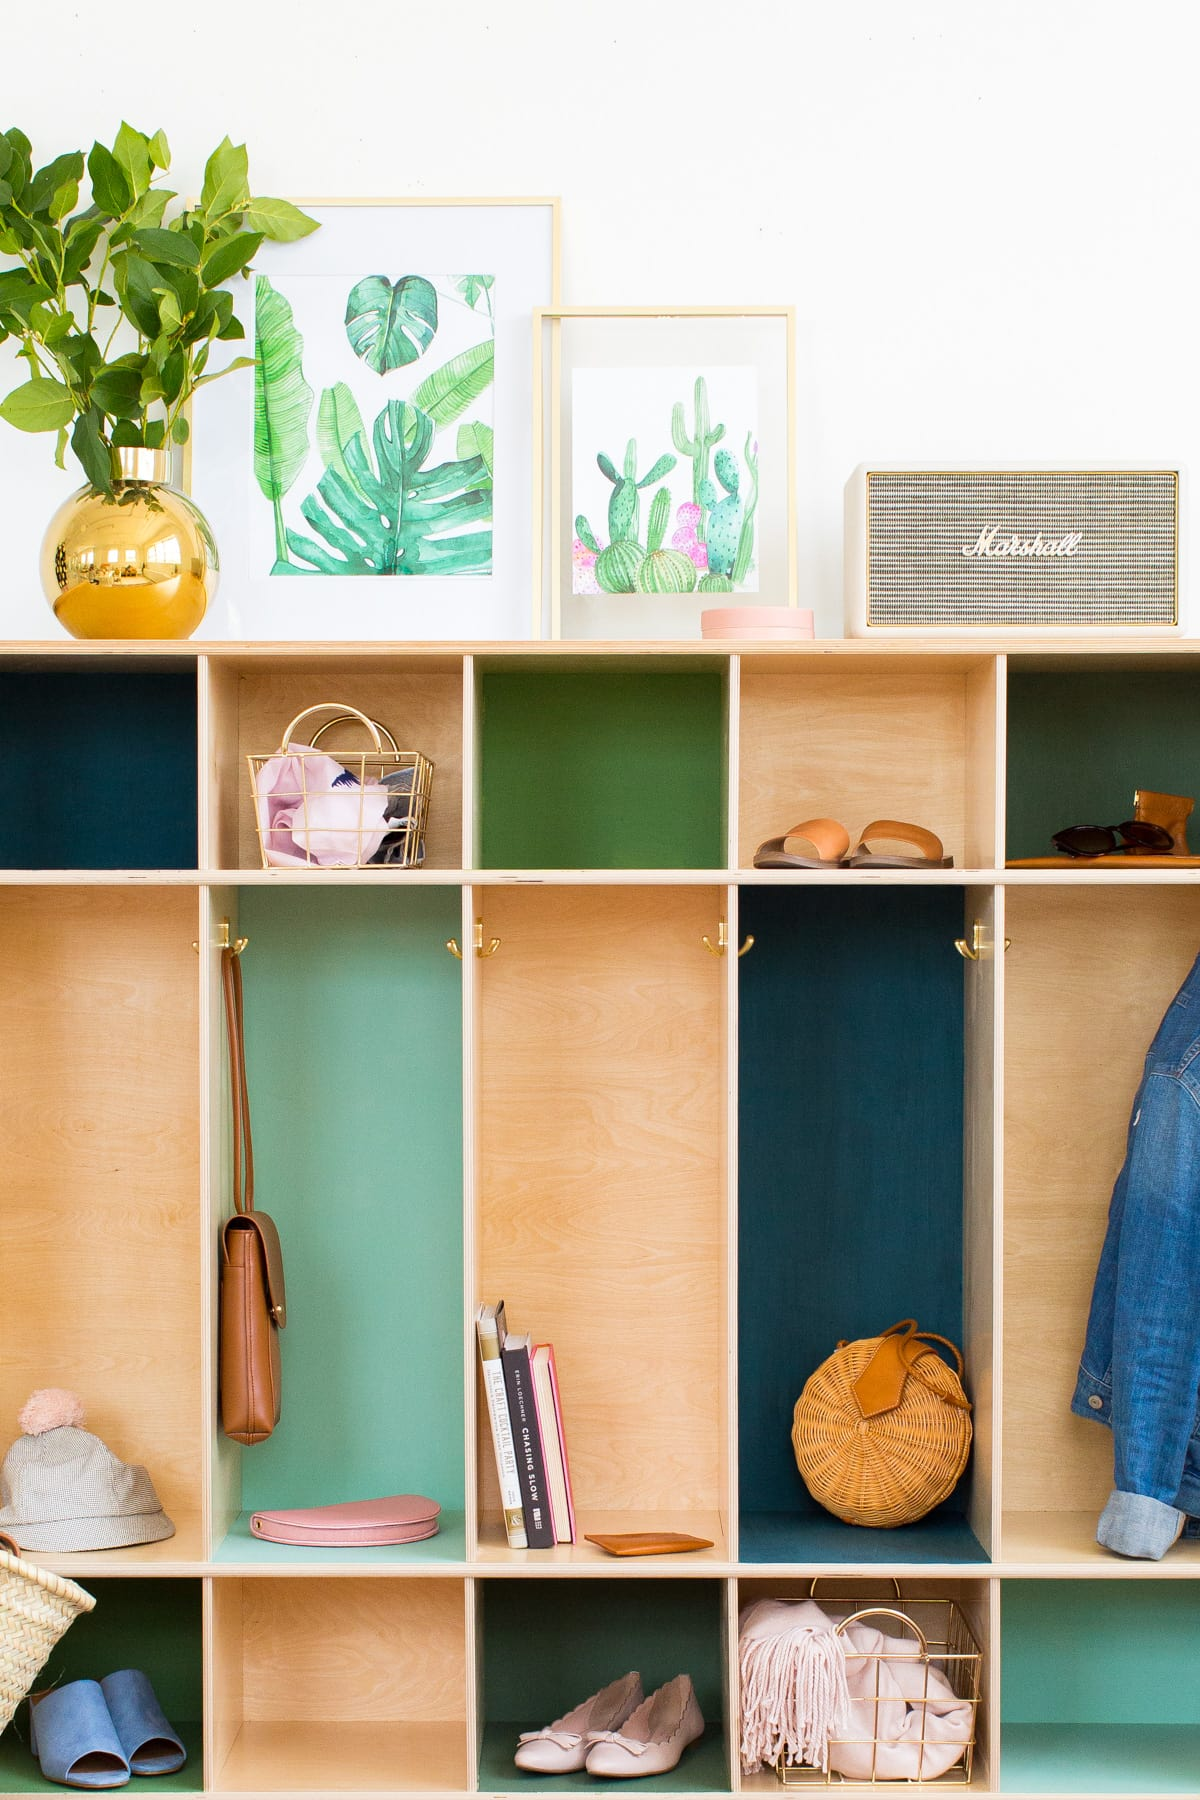 DIY Color Block Storage Lockers by top Houston lifestyle blogger Ashley Rose of Sugar & Cloth